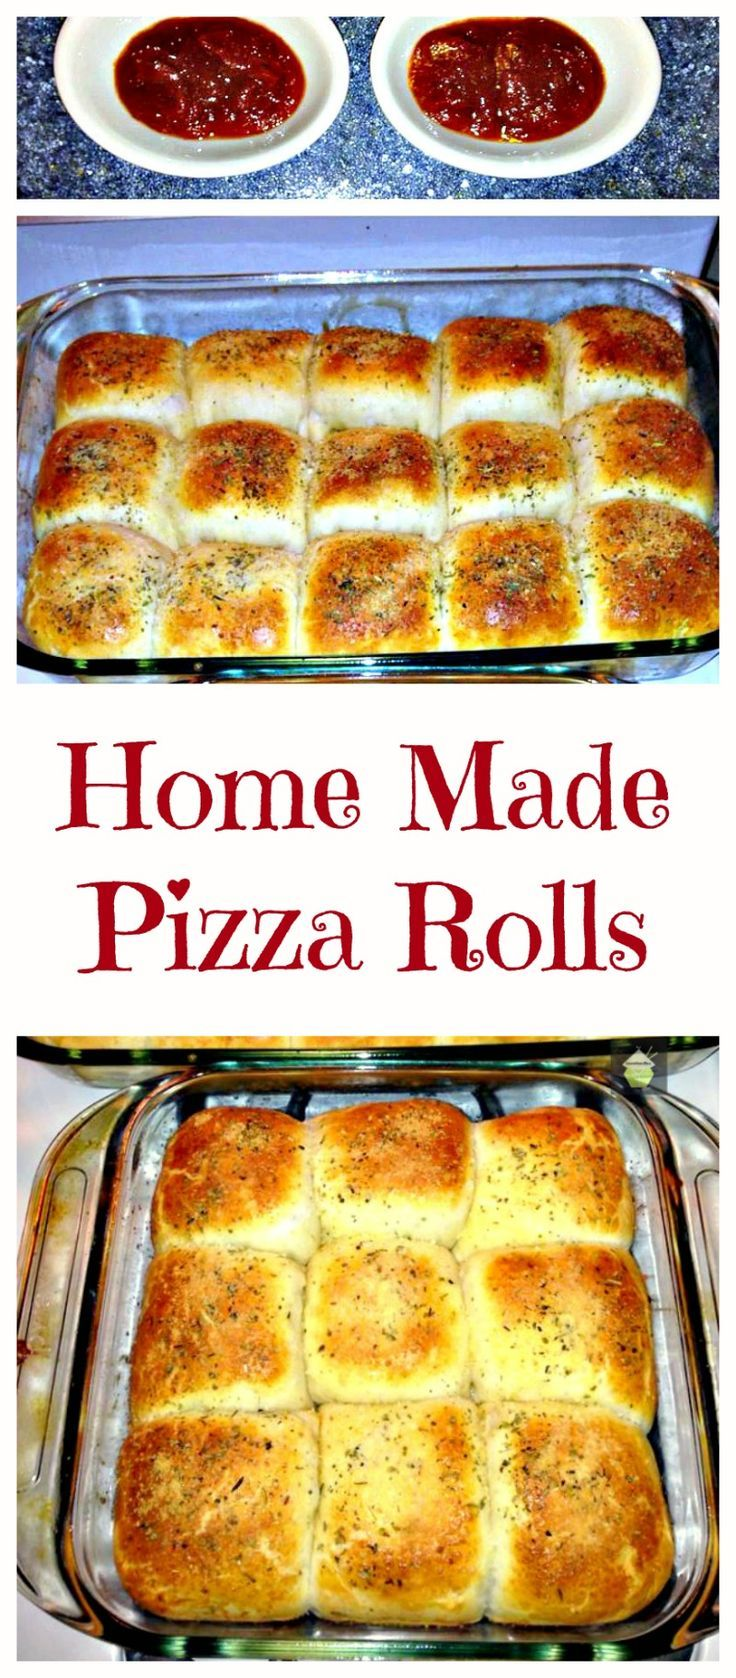 Home made Pizza Rolls - Use the filling suggestions in the recipe or add your…